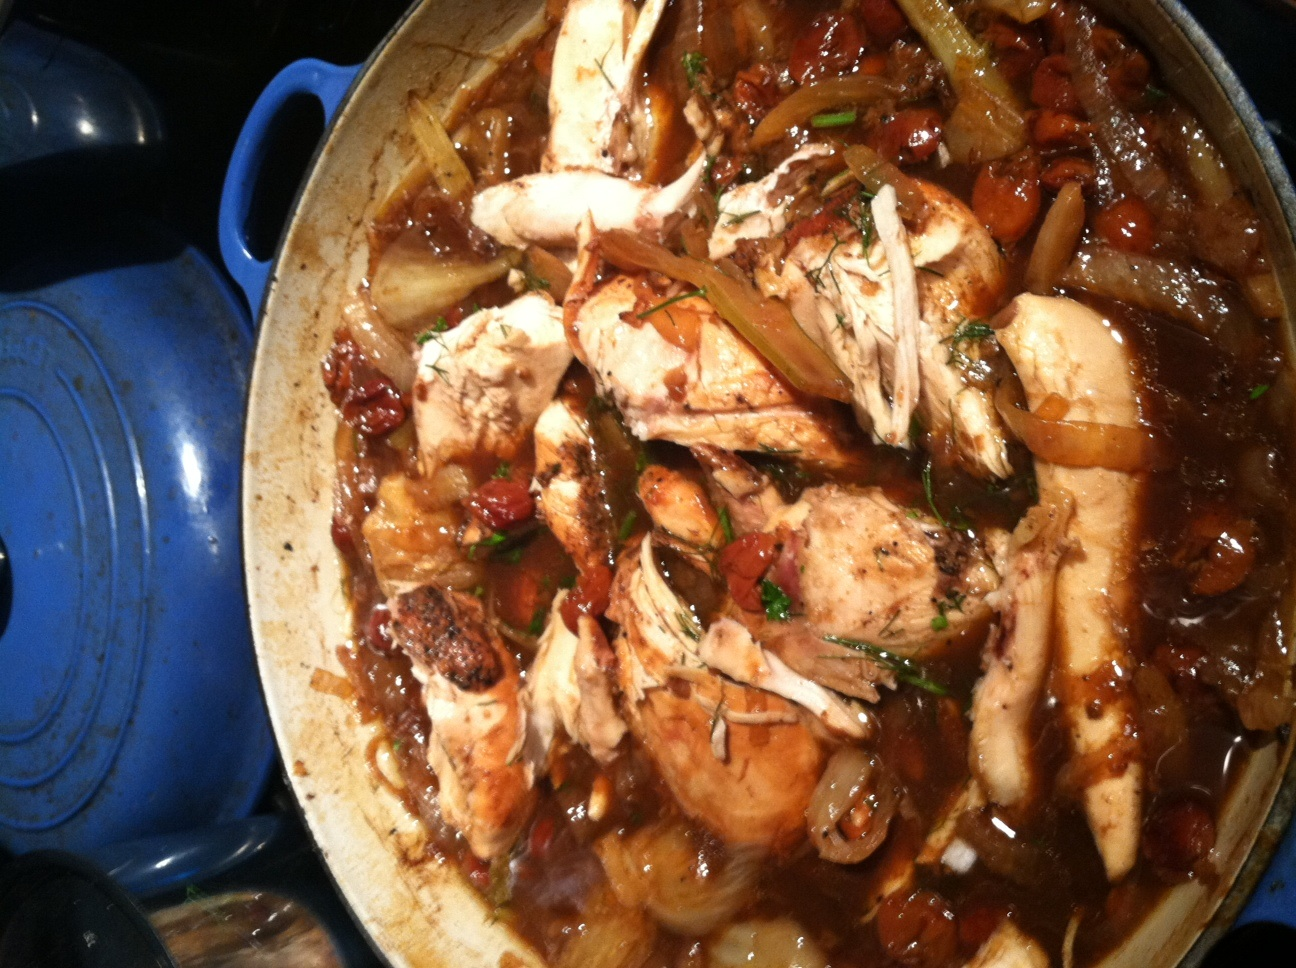 Brewed and Braised Cherry Chicken